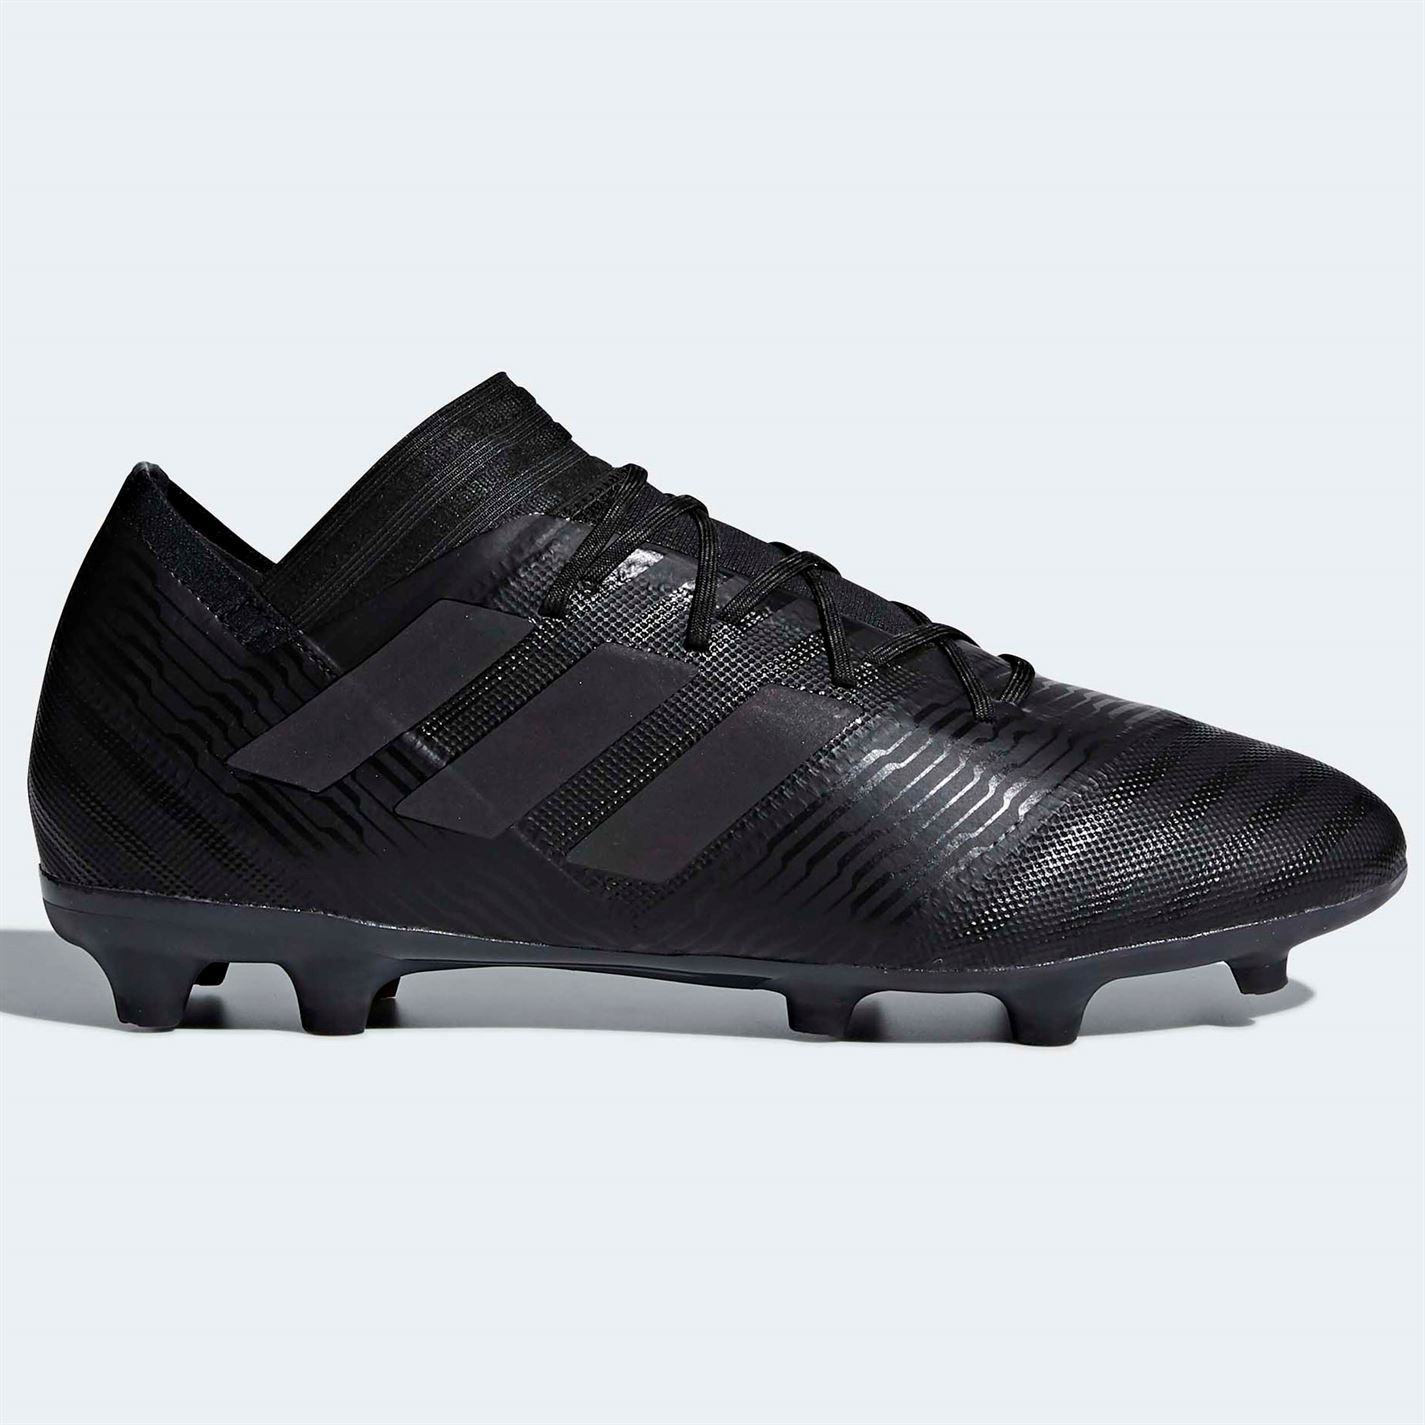 outlet store 99ff6 0cc7a ... adidas Nemeziz 17.2 FG Firm Ground Football Boots Mens Black Soccer  Cleats Shoes ...